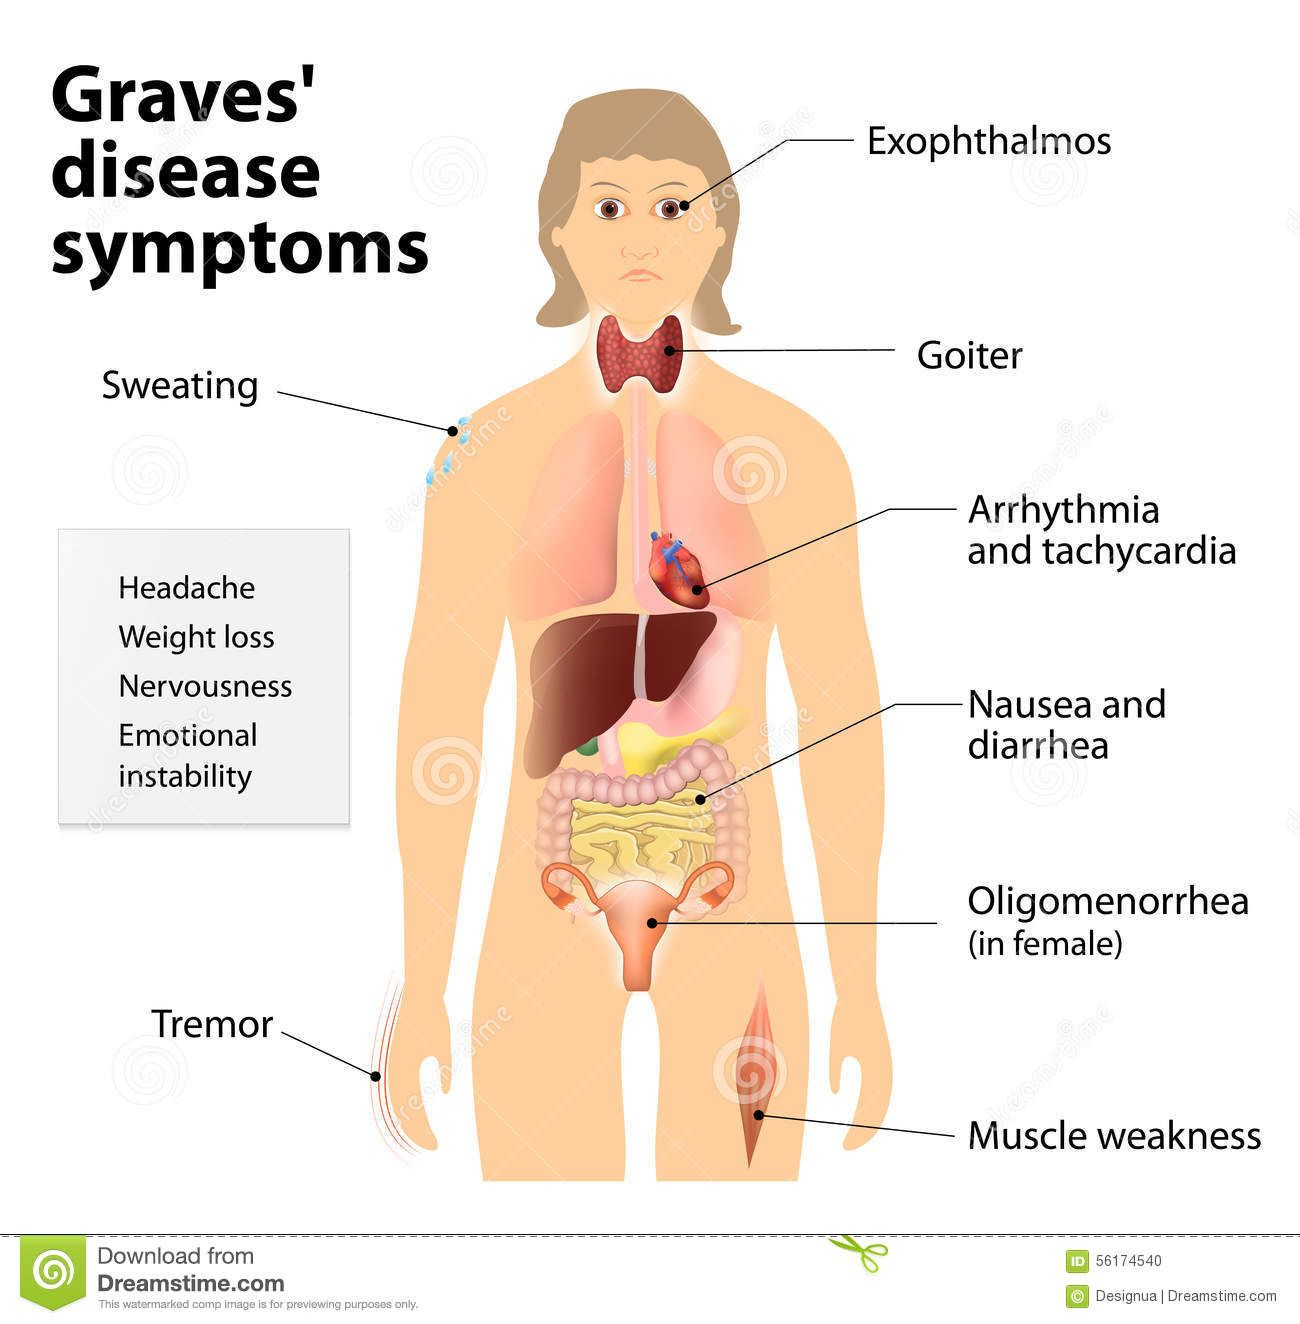 What Is Graves' Disease Causes, Symptoms, and Treatment